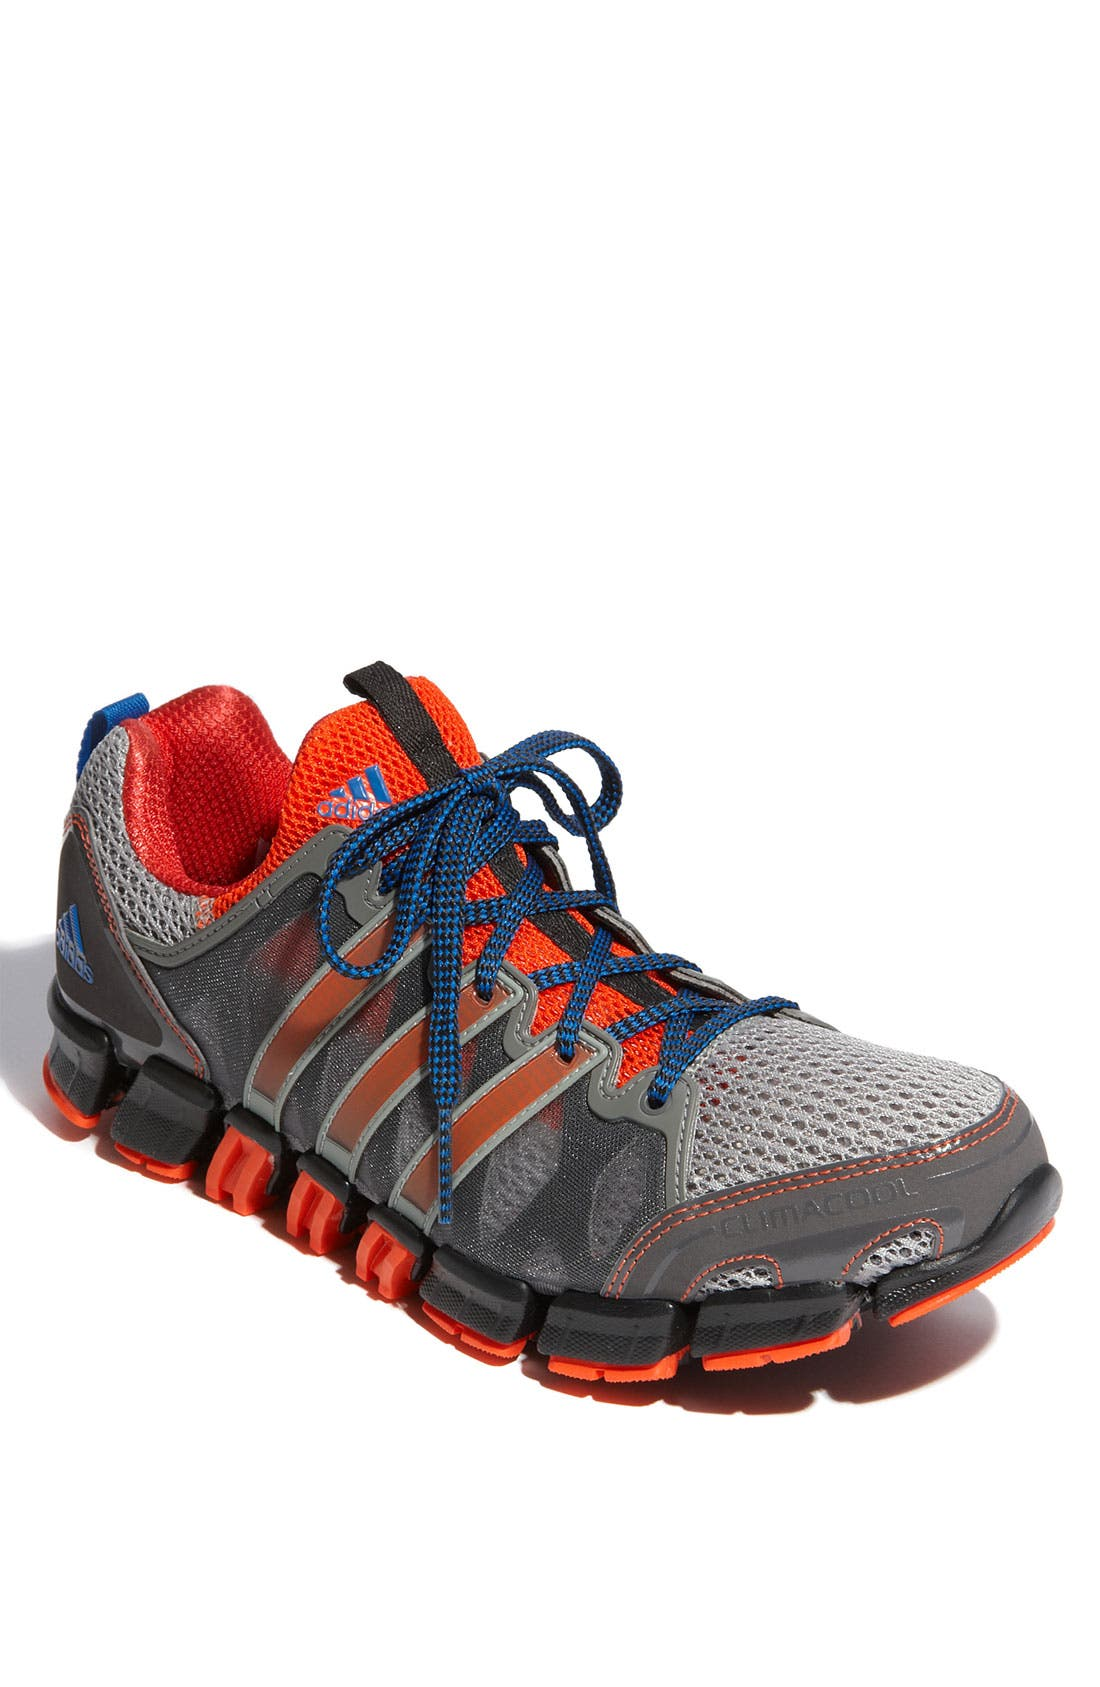 Alternate Image 1 Selected - adidas 'CLIMA Ride' Trail Running Shoe (Men)